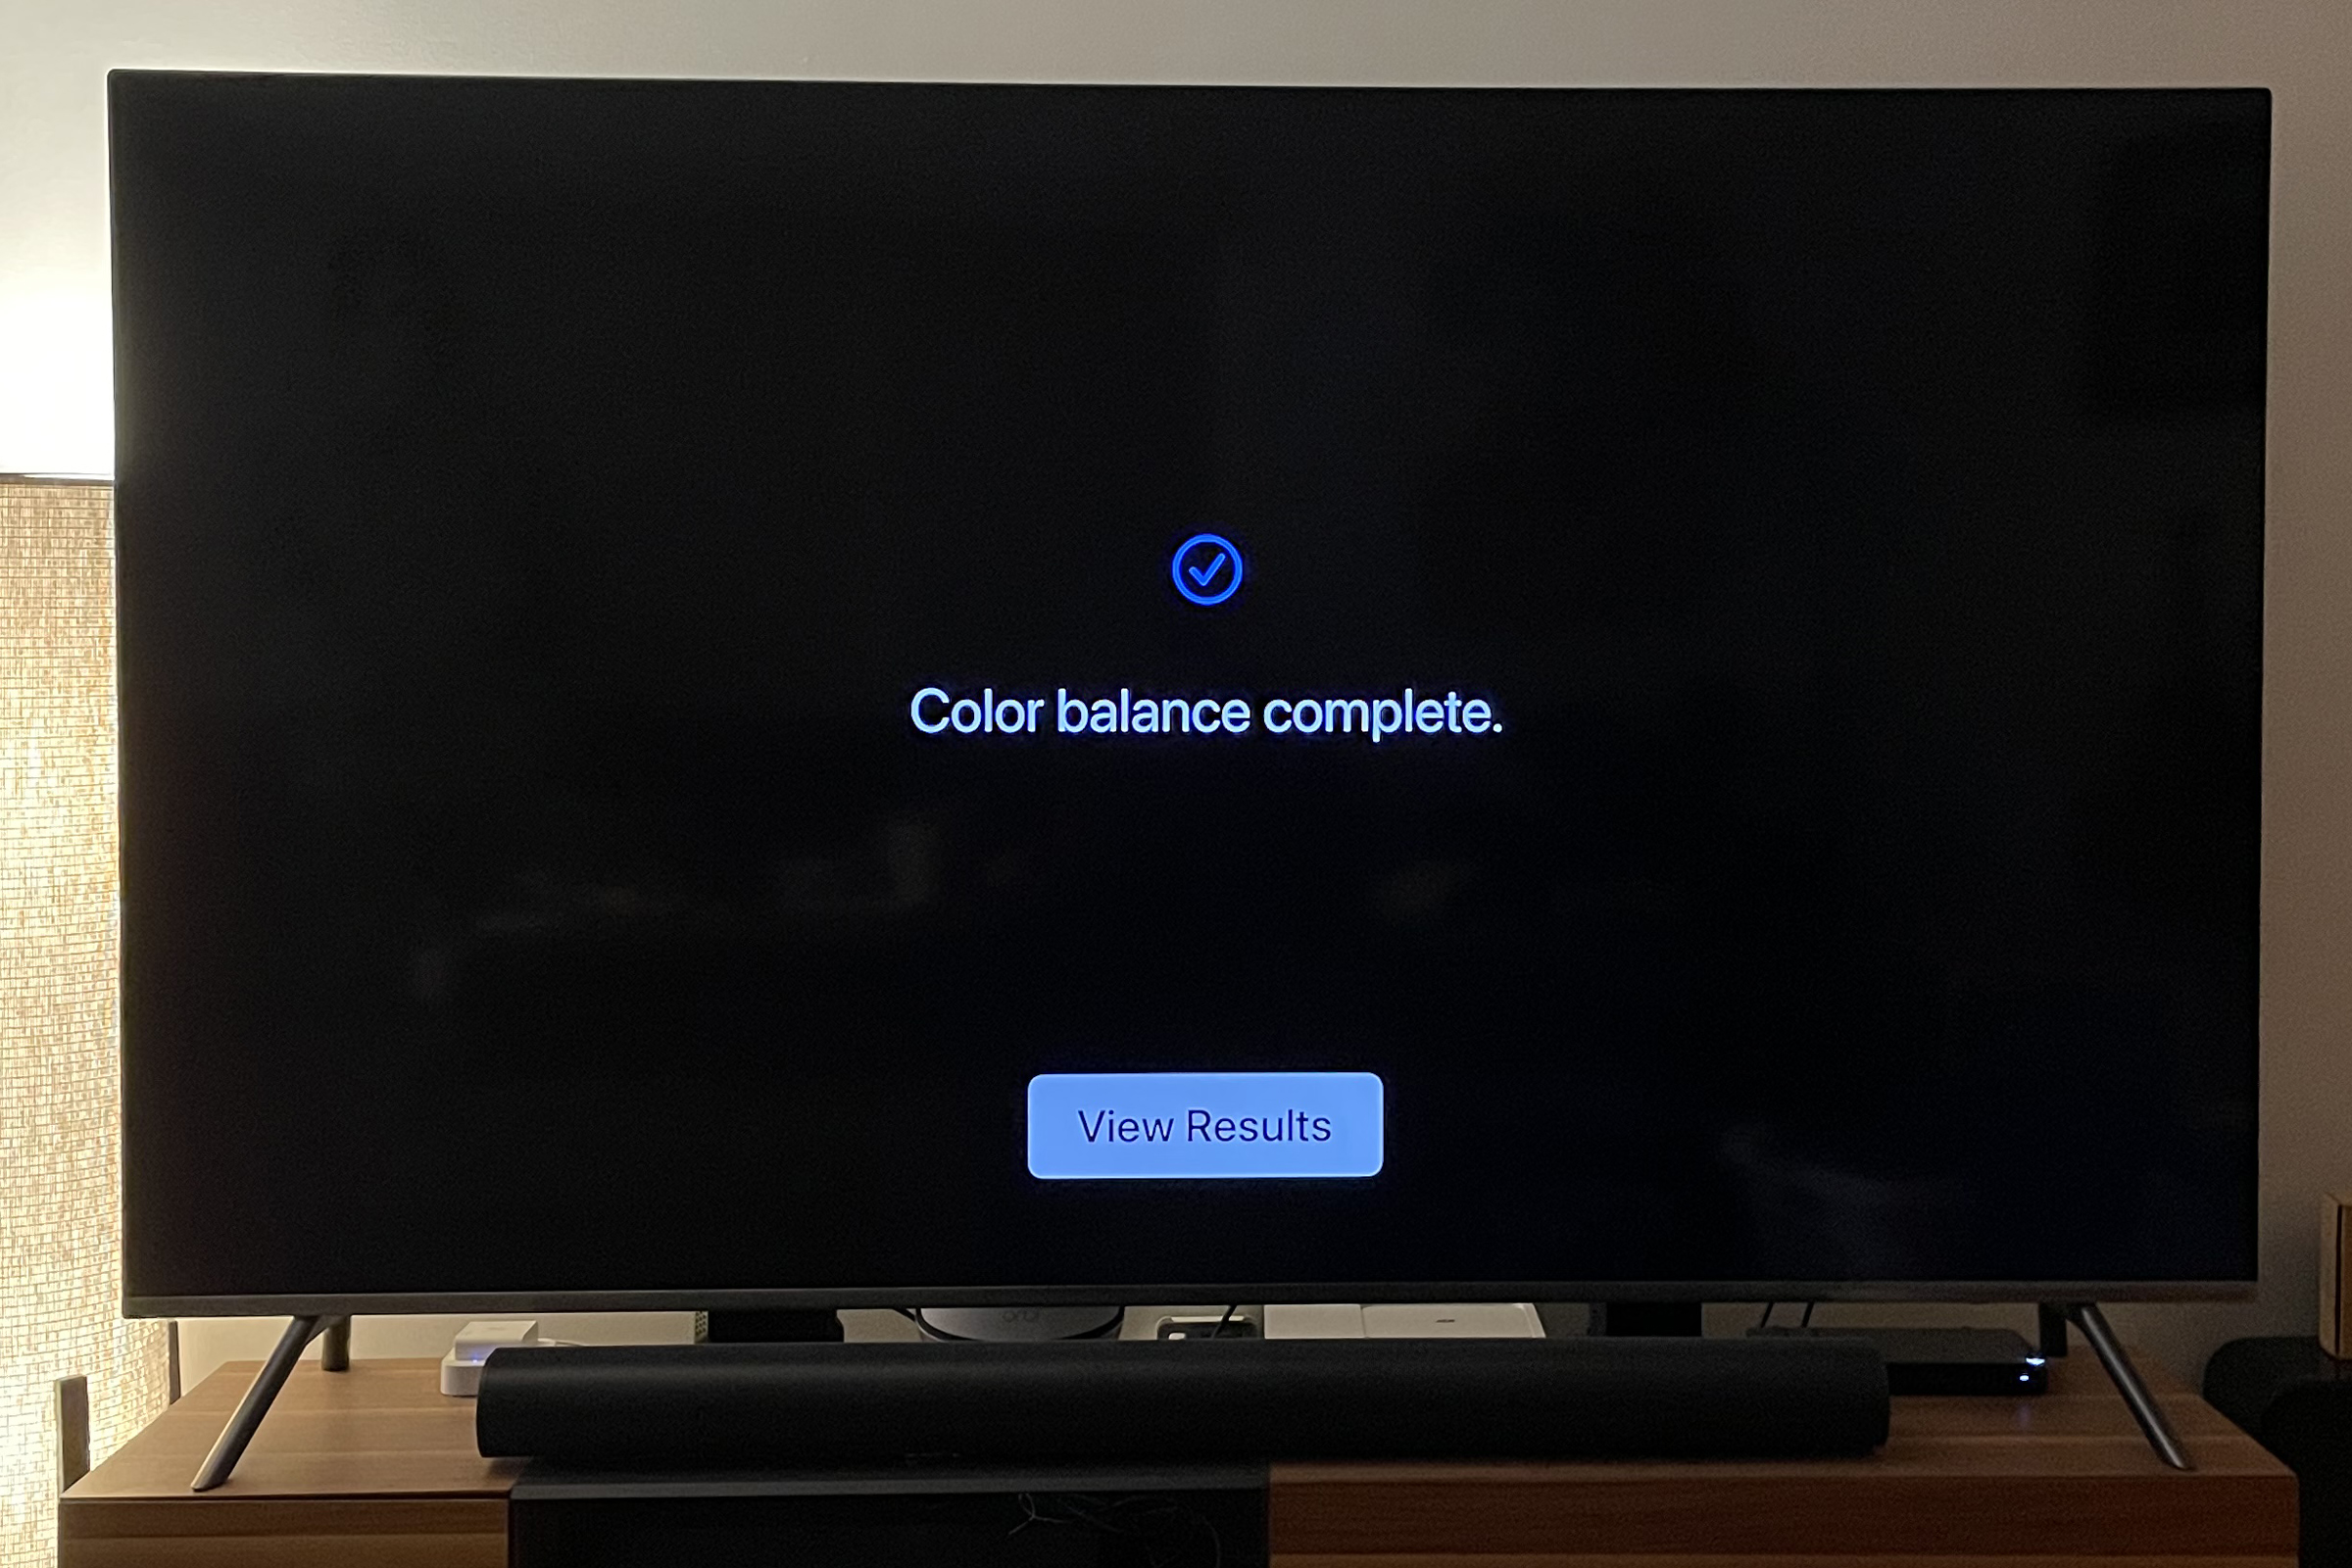 How To Use Your iPhone And Apple TV To Calibrate Your TV's Picture